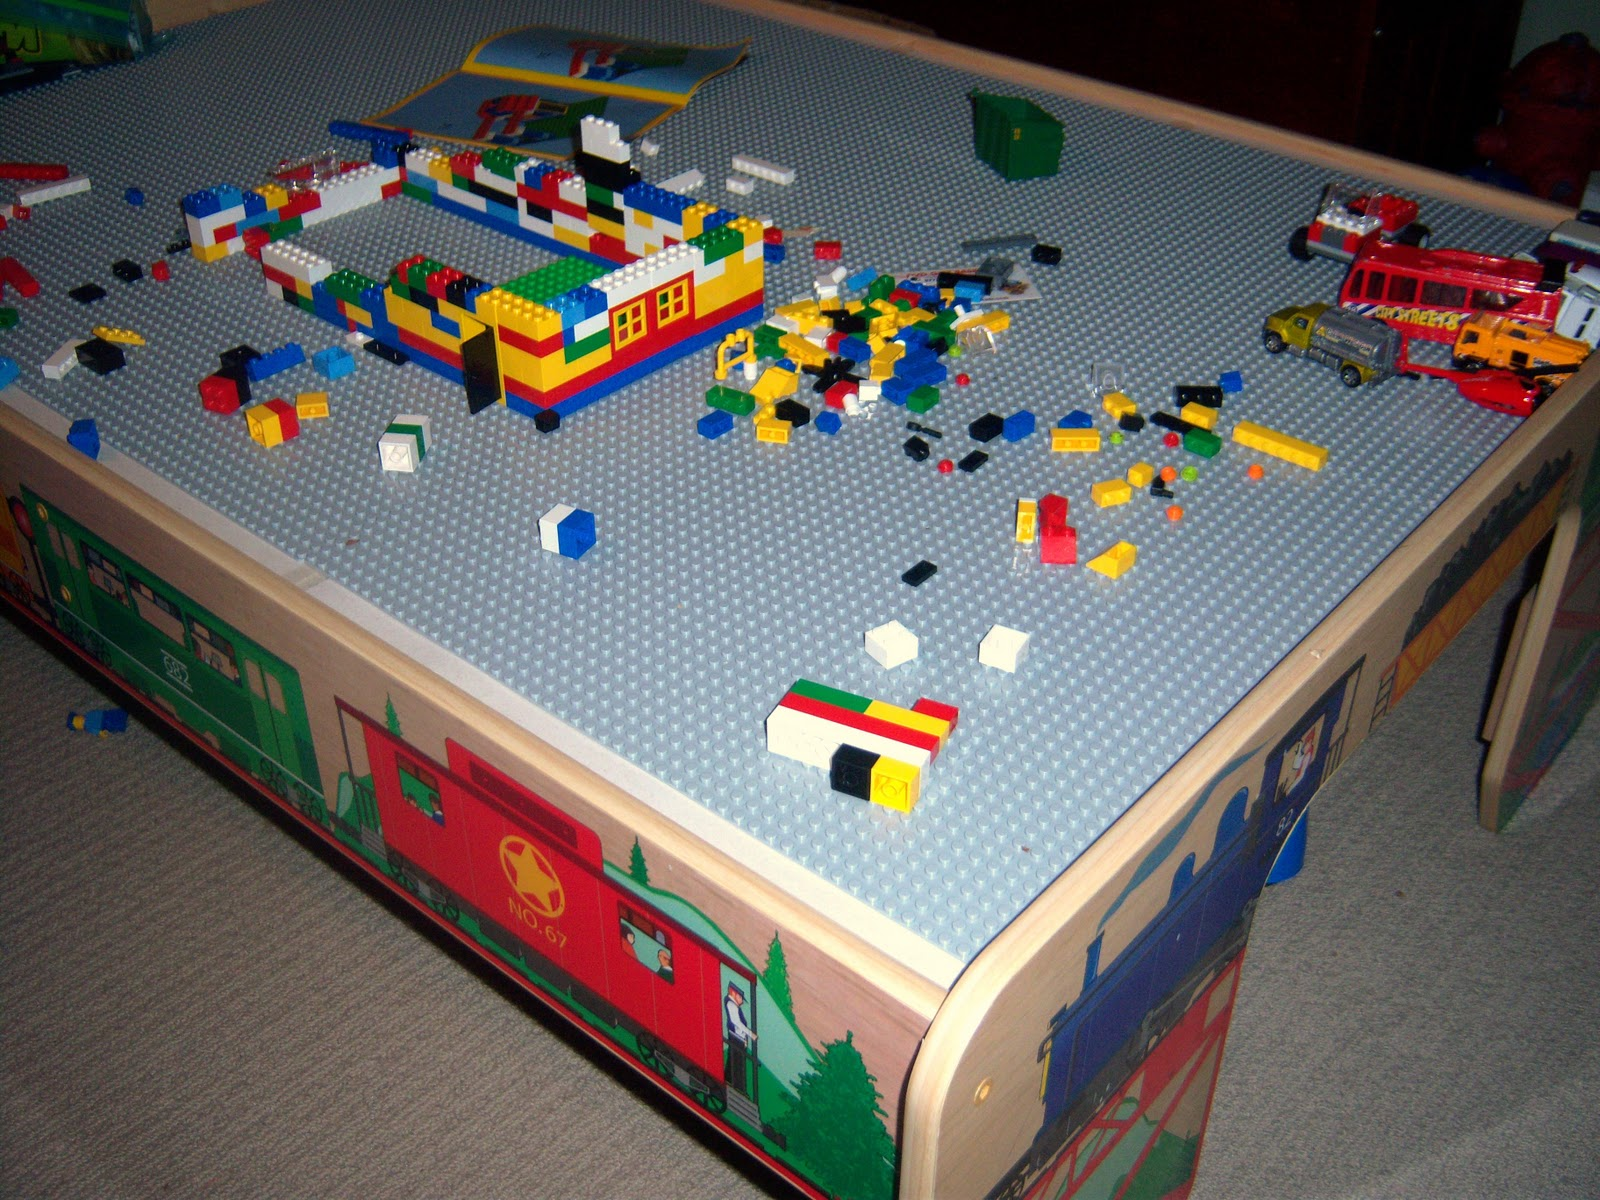 Andyu0027s Train Table Is Now A Lego Table!